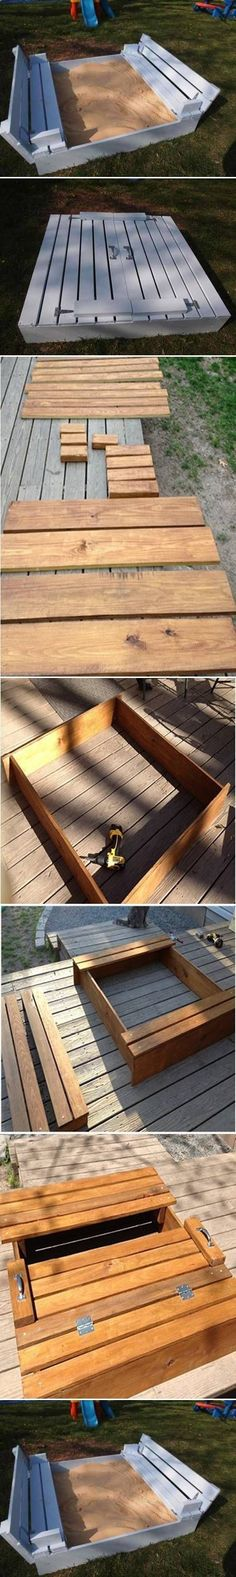 DIY Sandbox - This is the only sandbox I'd feel comfortable letting children play in. Anything not covered, is a litter box!